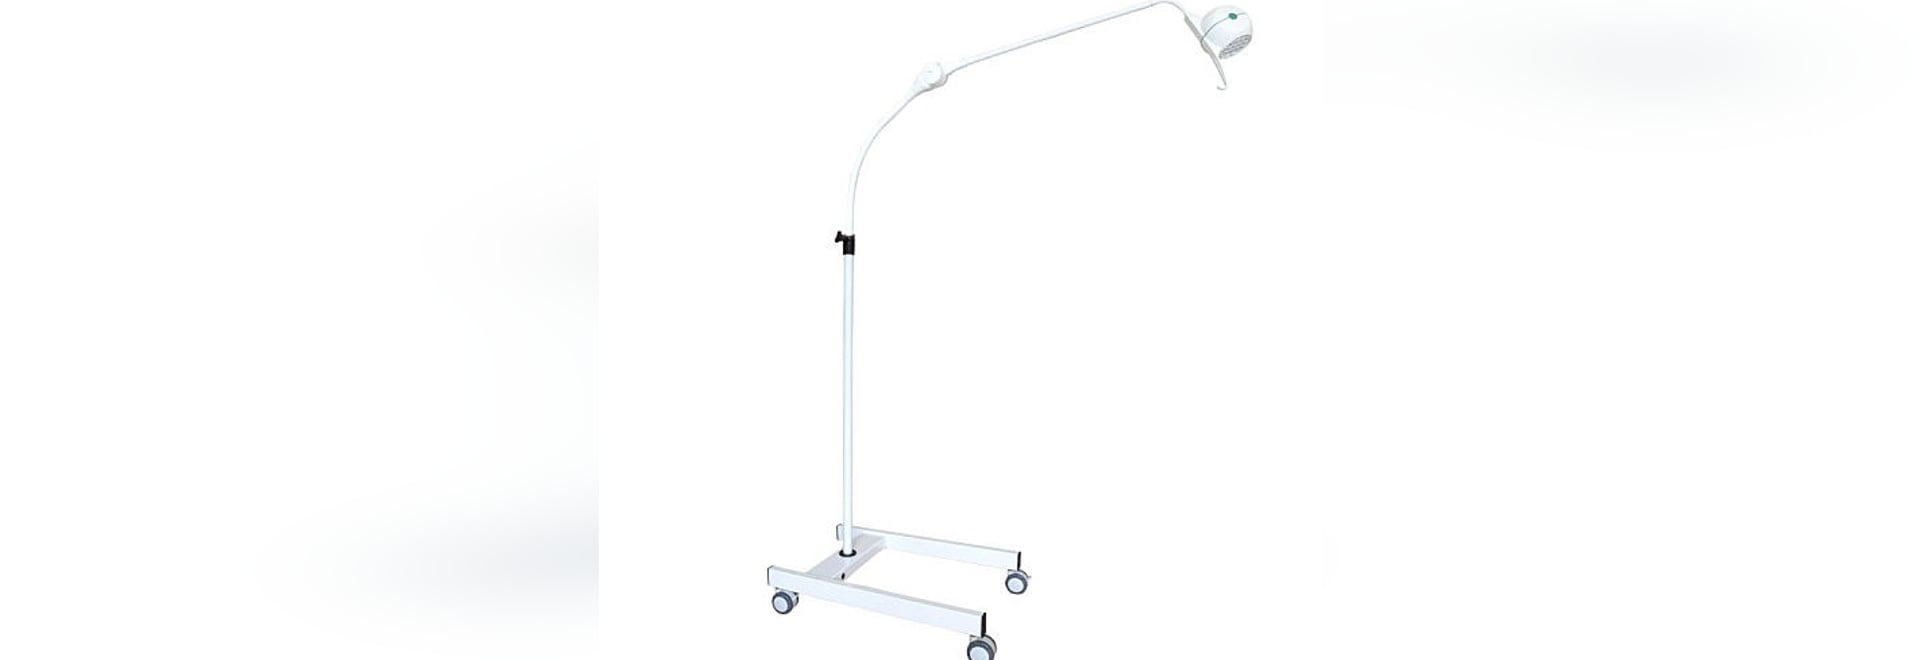 Bellon: Medical device, examination light or for minor surgery intended for cares units and city practitioners.